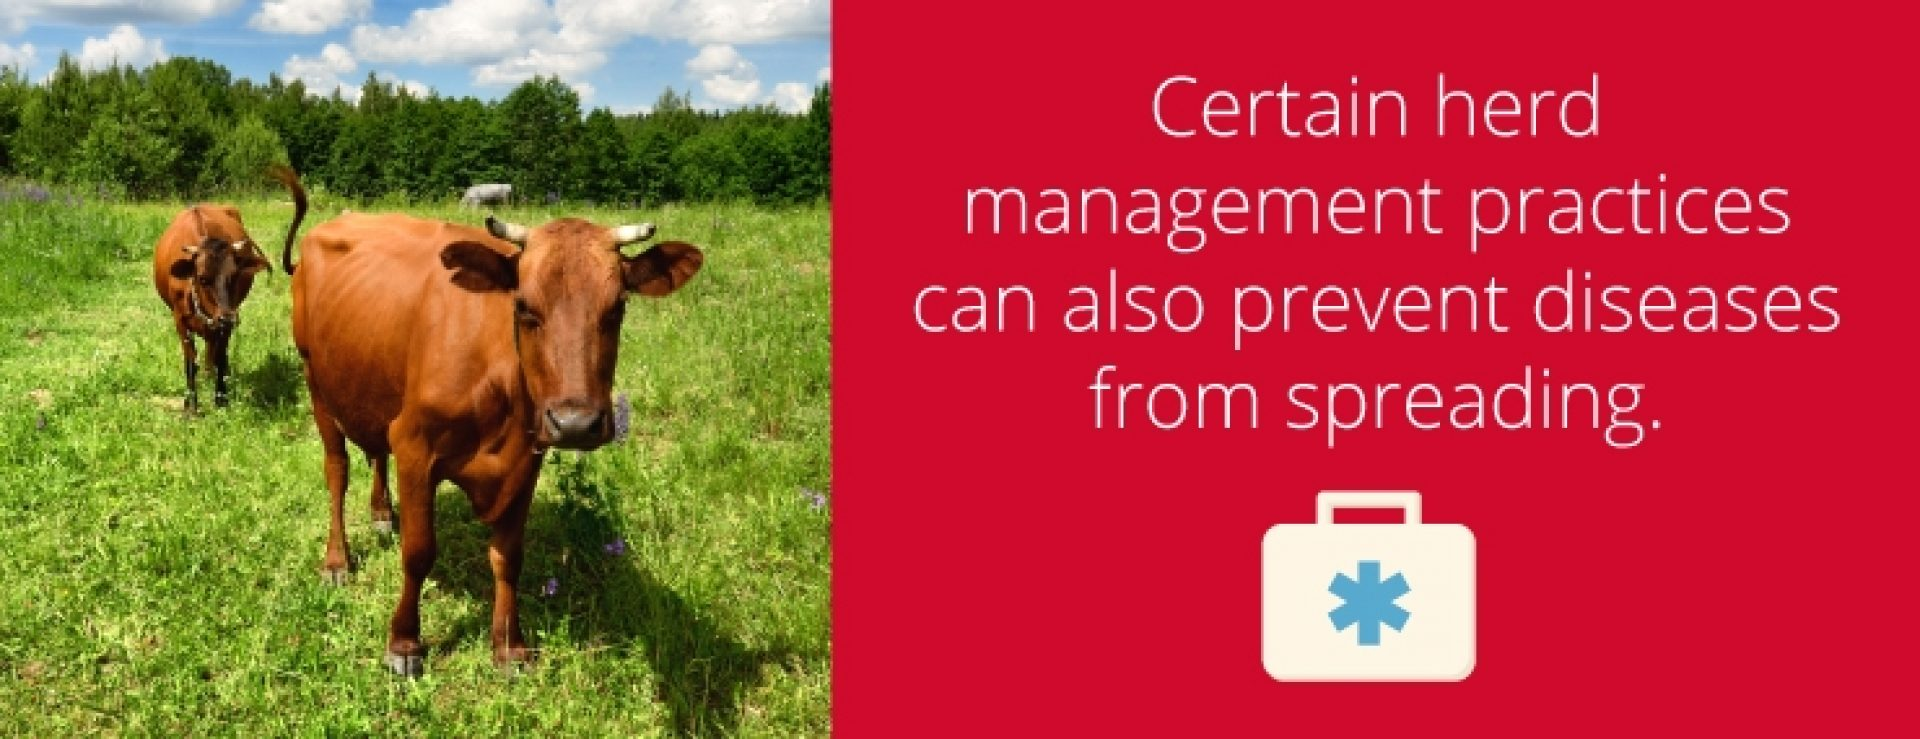 Cattle Herd Management Practices image